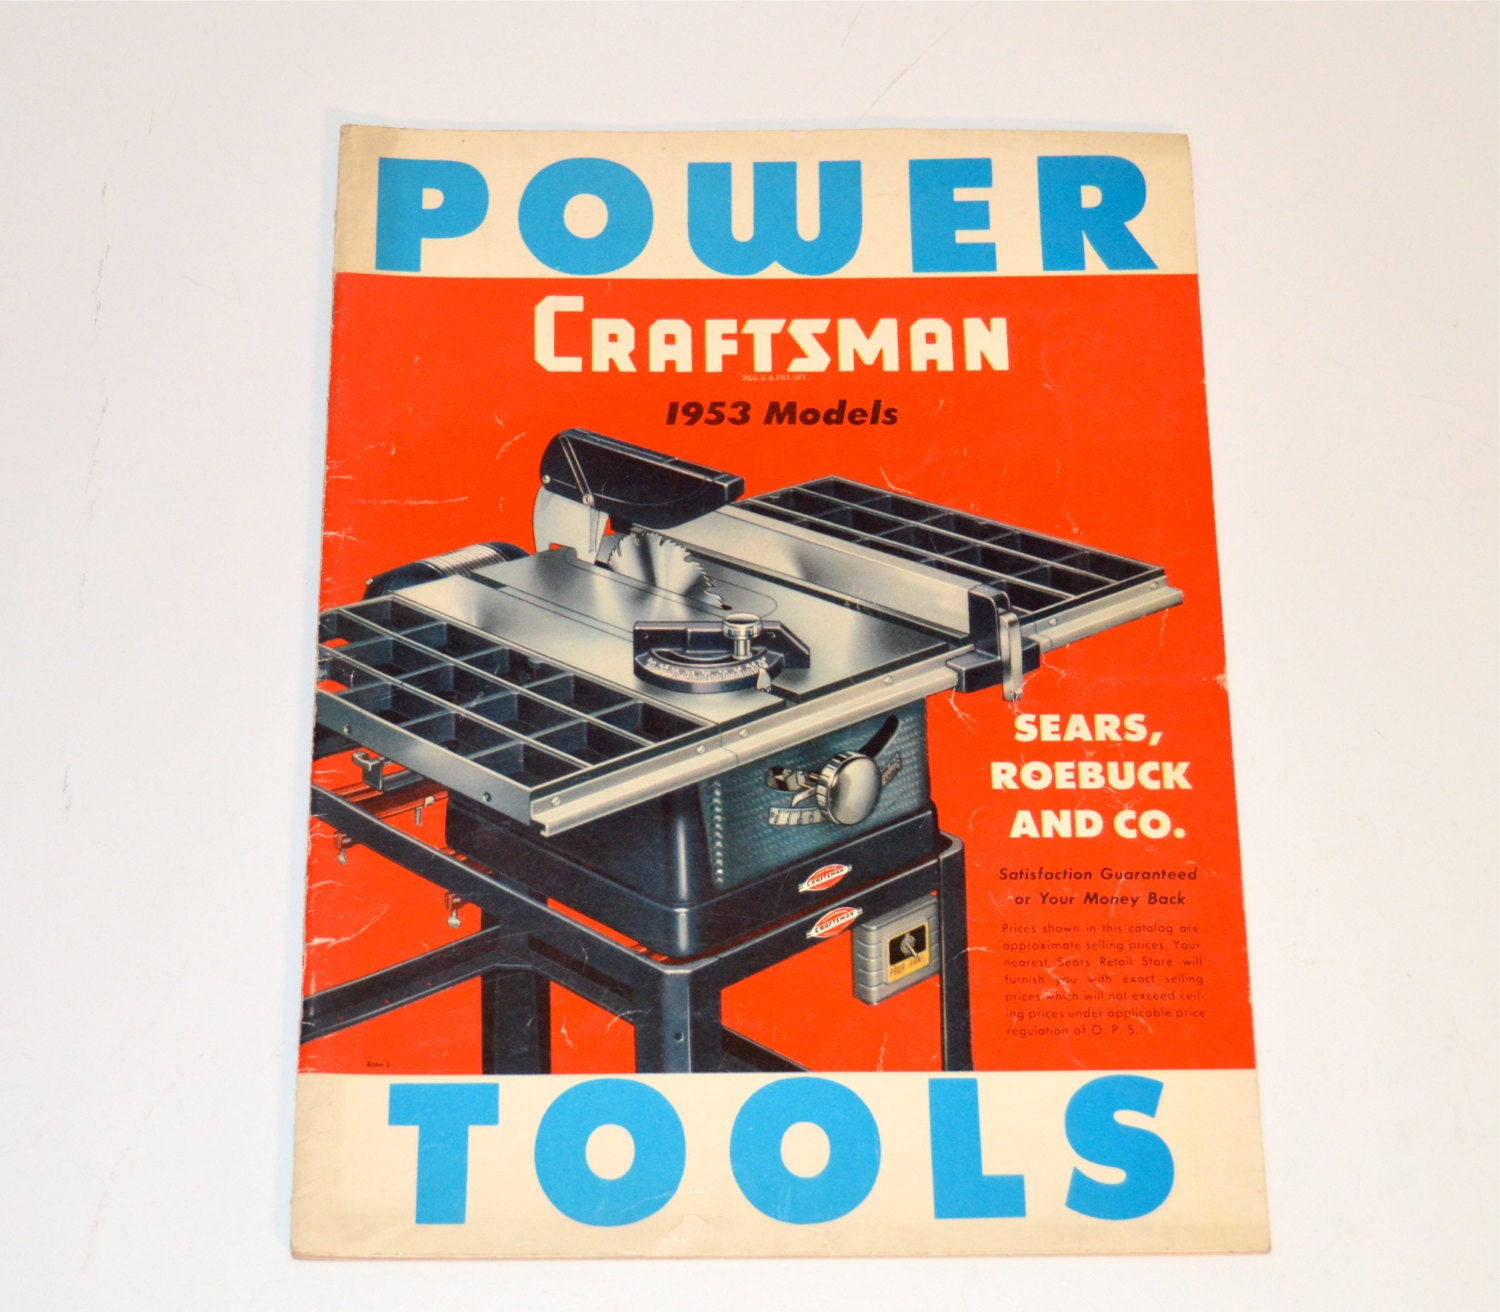 Brian tried to trade in some old Craftsman tools, the ones that come with a lifetime, no-questions-asked replacement policy. Unfortunately, the Tool Associate at Sears deemed Brian unworthy of the.